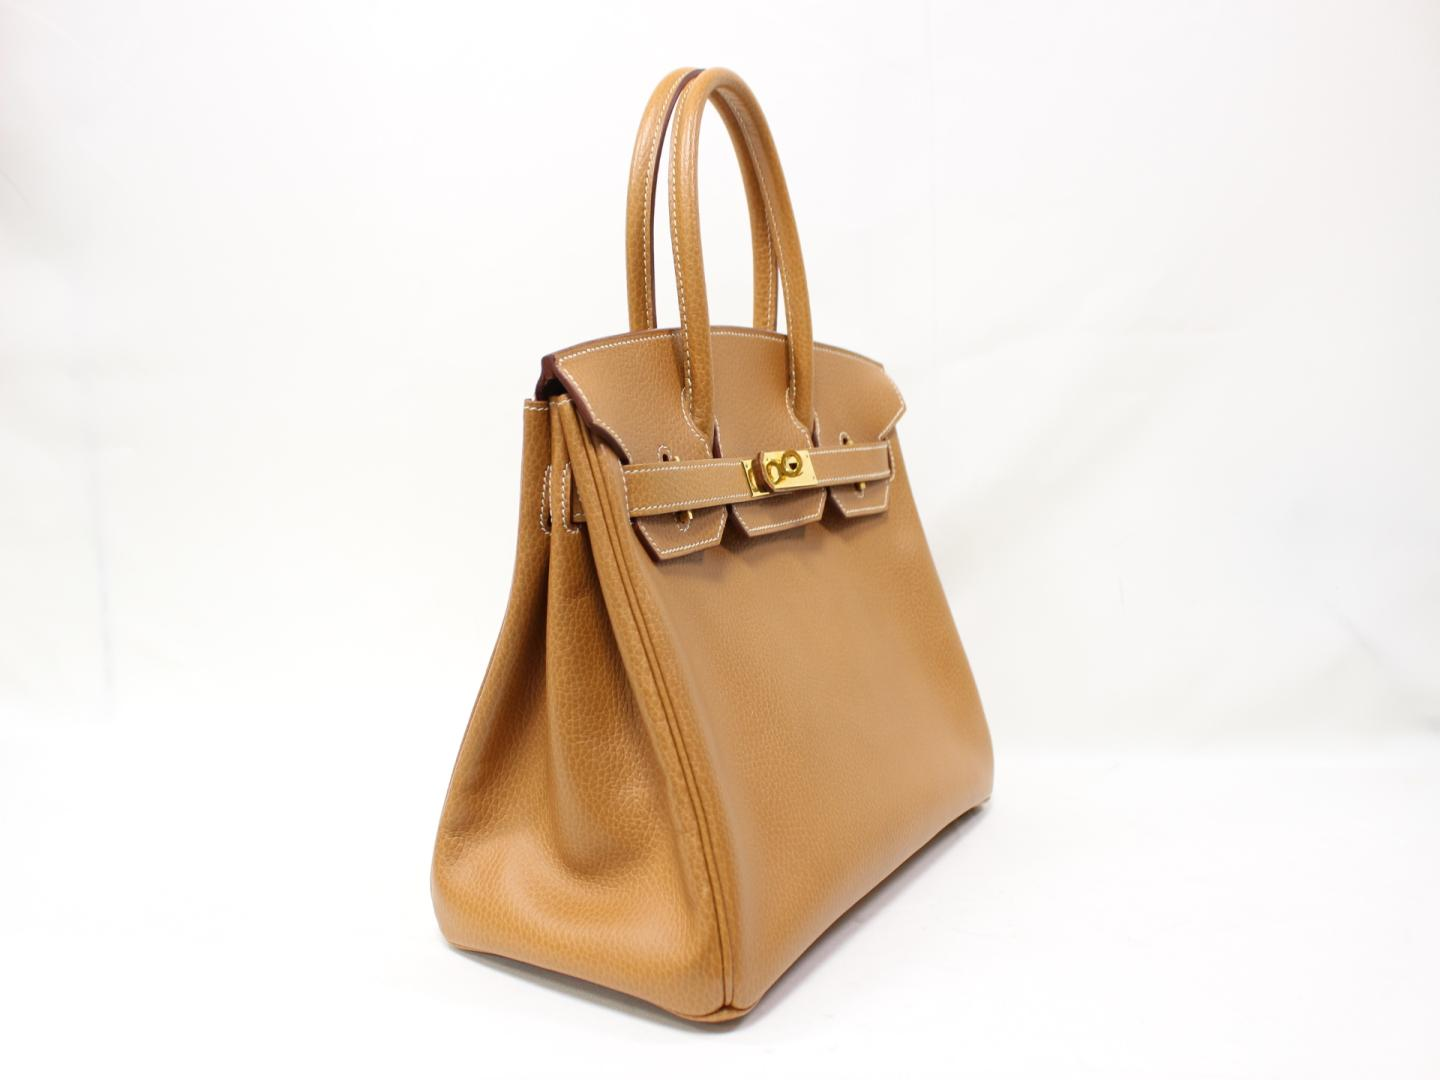 26a35a68adce ... official store authentic hermes birkin 30 hand tote bag ardennes  leather gold brown ghw 2666d cfa24